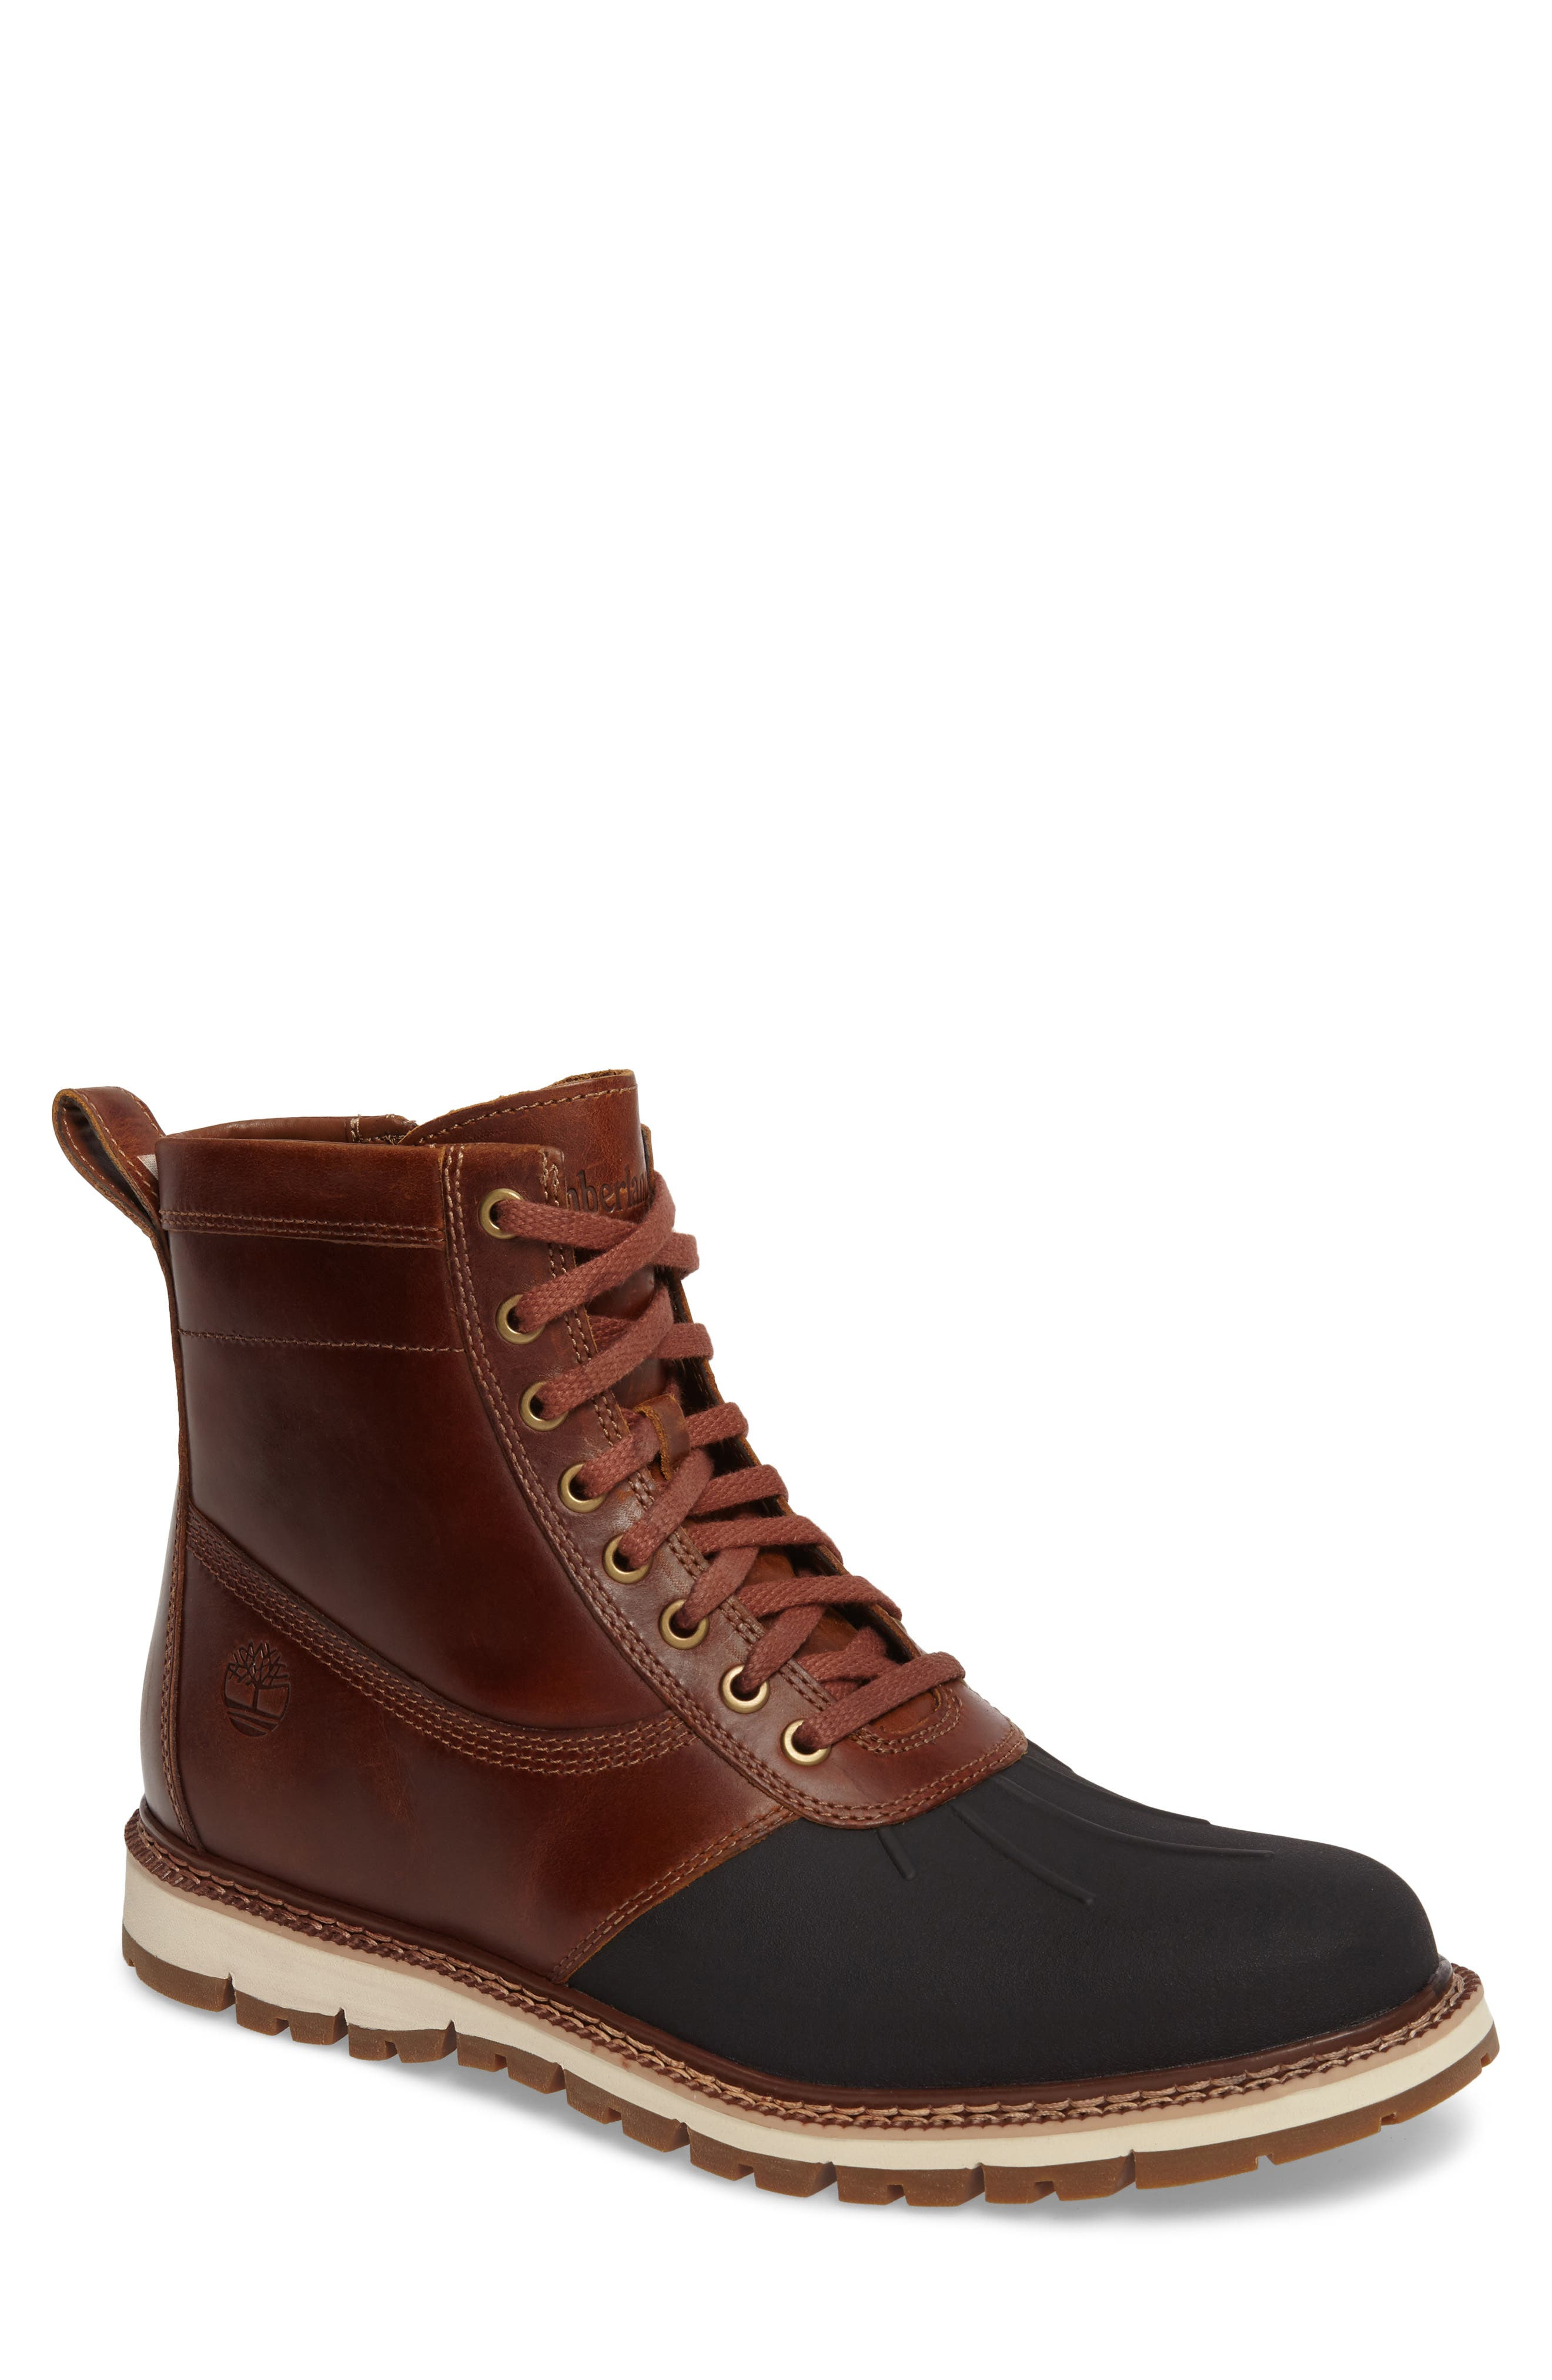 Alternate Image 1 Selected - Timberland 'Britton Hill' Moc Toe Boot (Men)